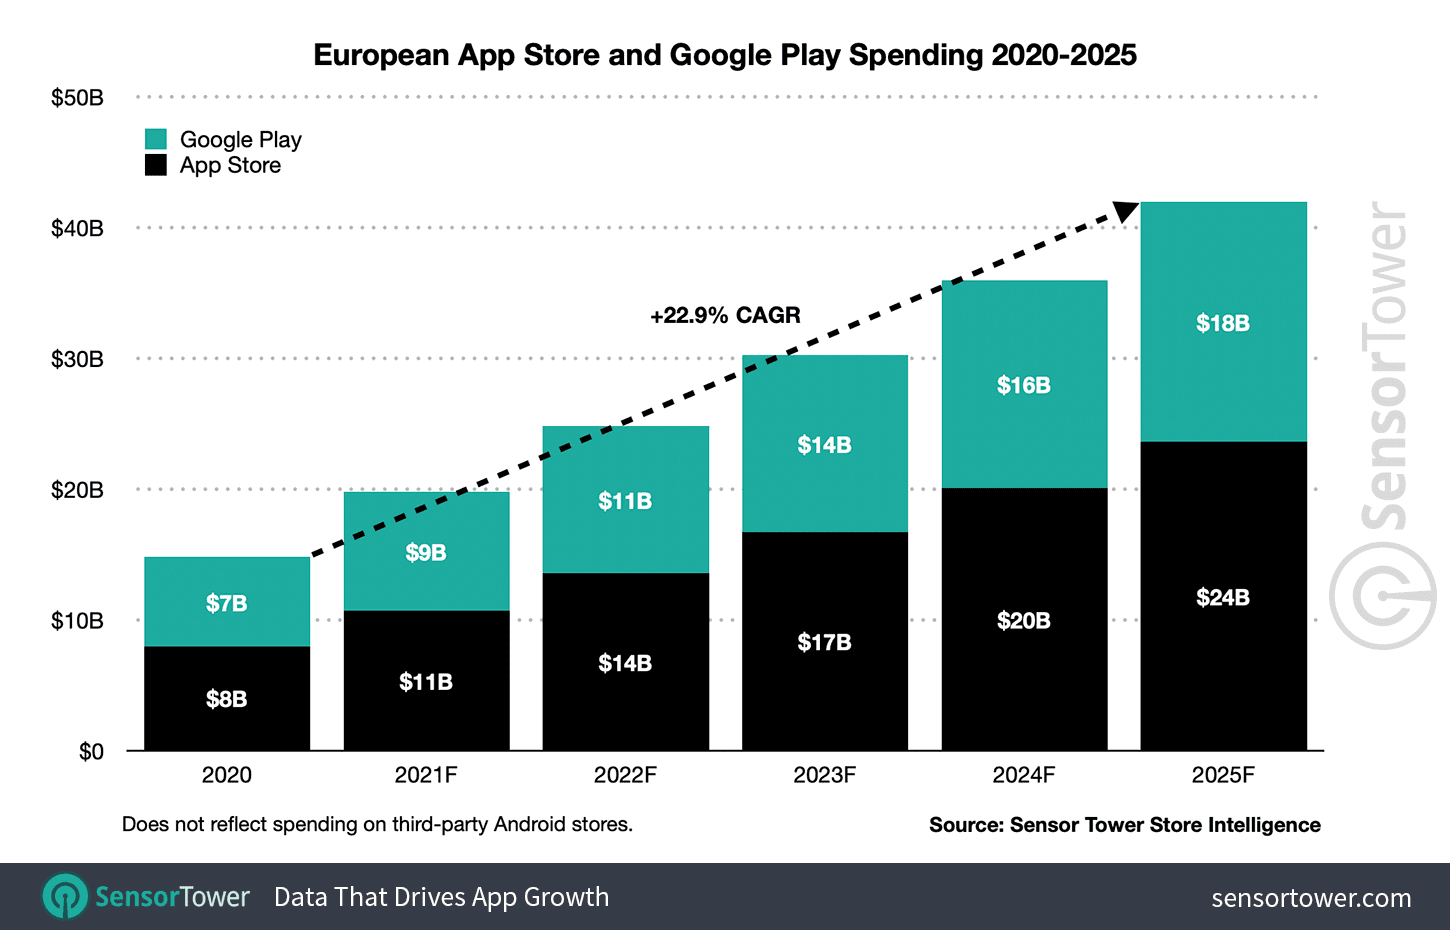 Mobile Market Forecast Report Predicts The App Spending To Go Up To $270 Billion Till 2025